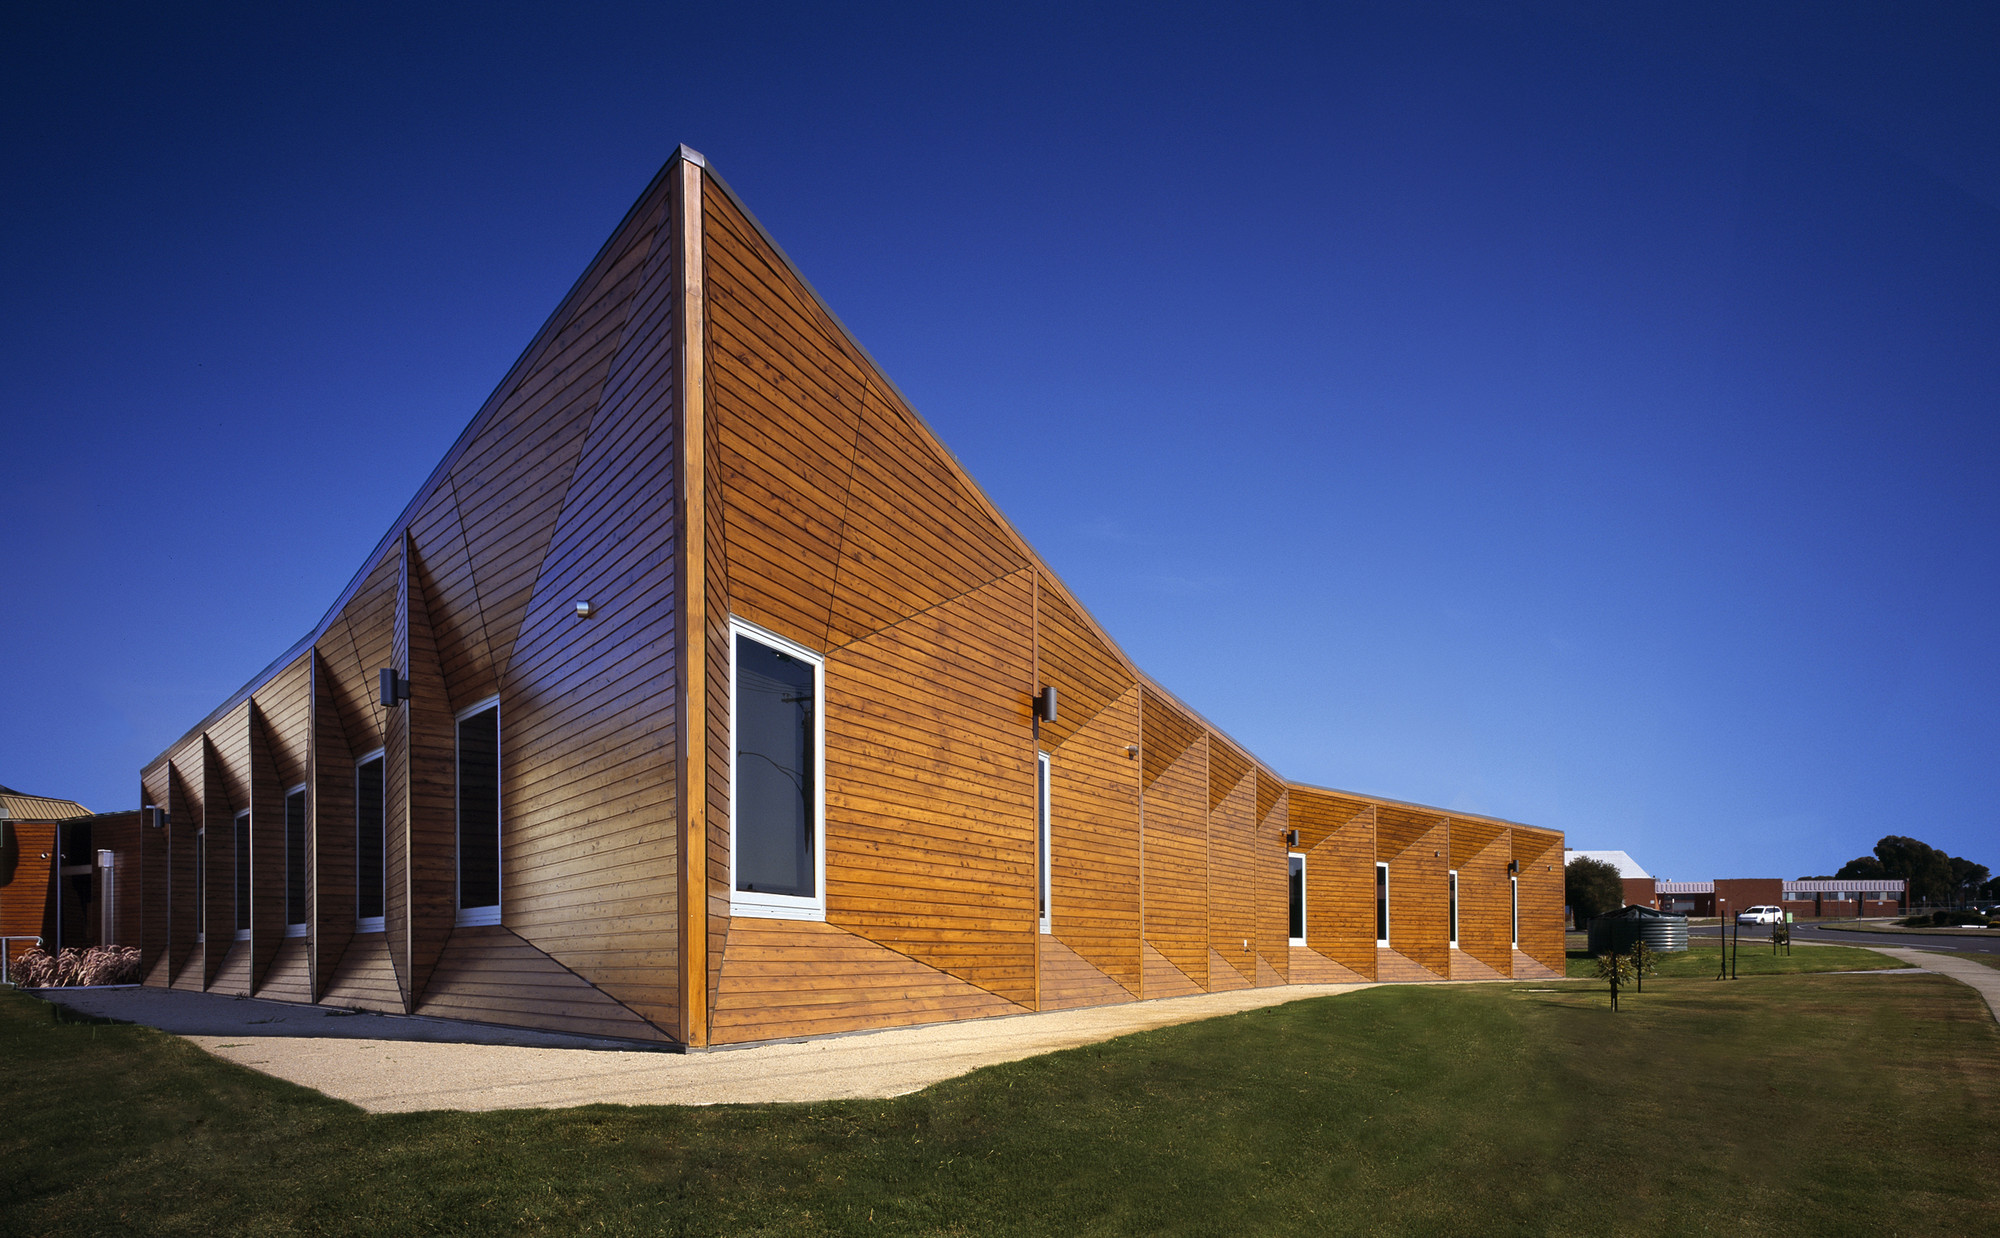 Belmont Community Rehabilitation Centre / Billard Leece Partnership, © Tony Miller